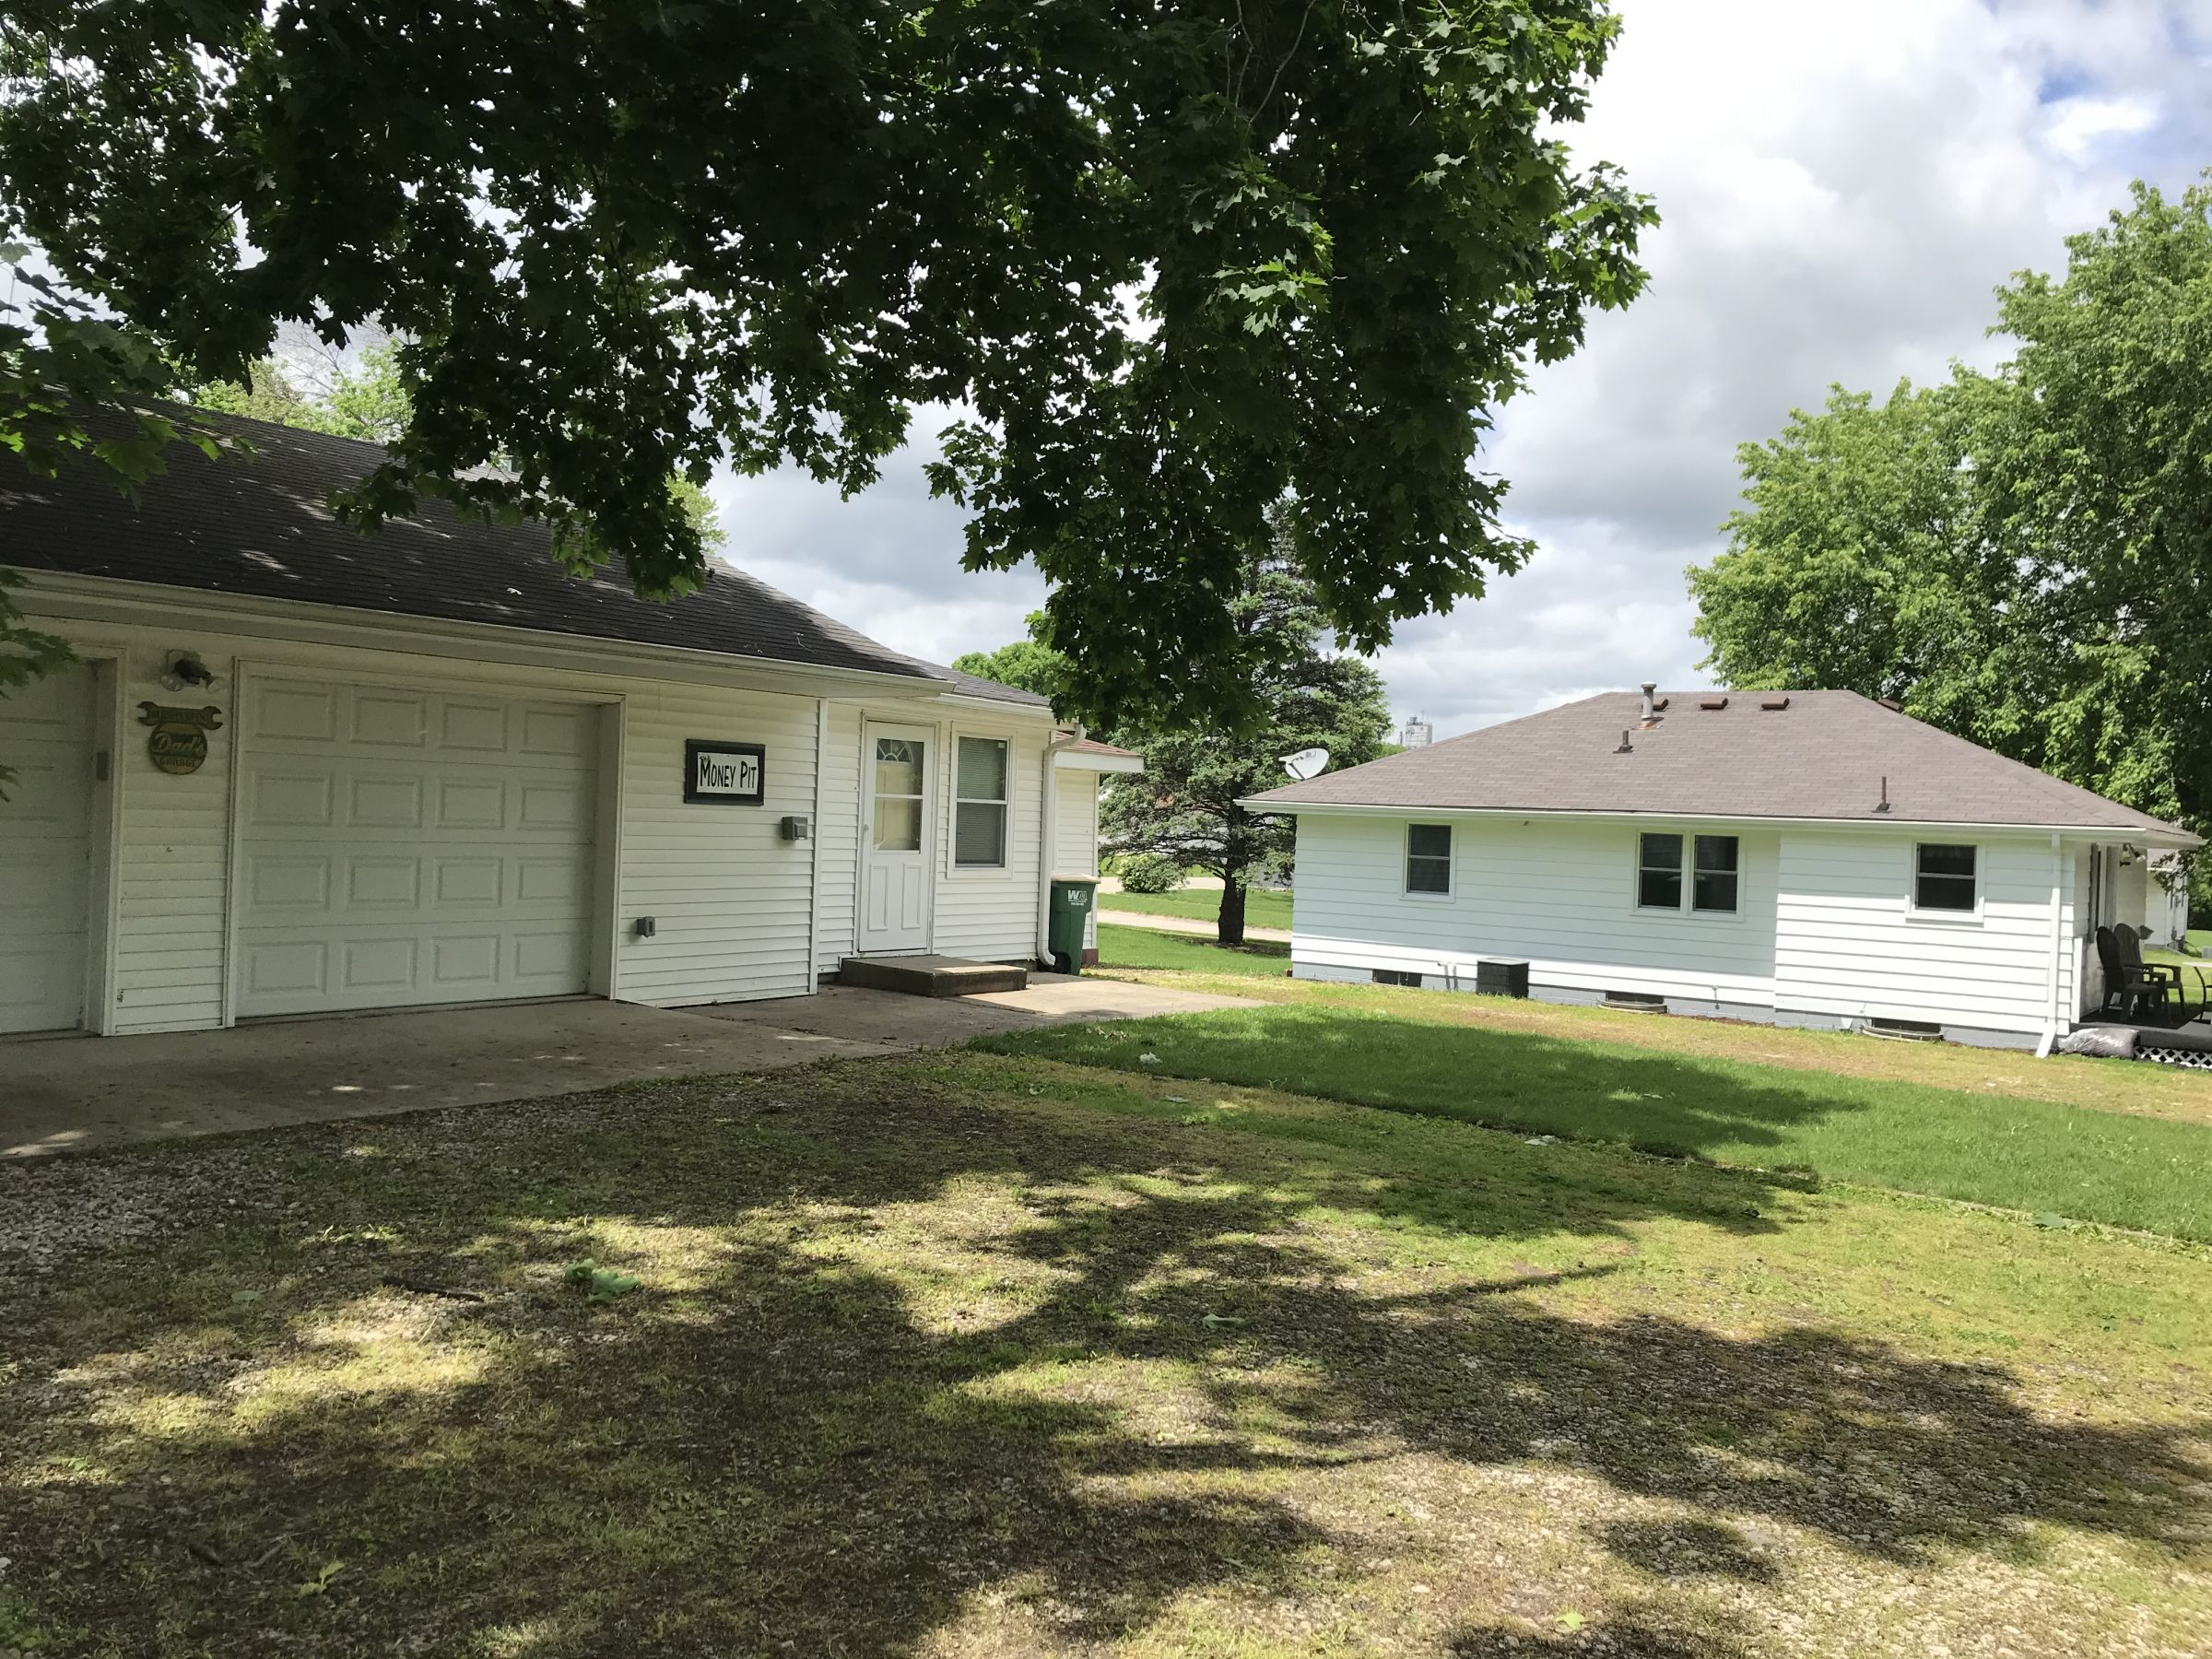 residential-warren-county-iowa-0-acres-listing-number-15016-5-2020-05-29-181844.JPG